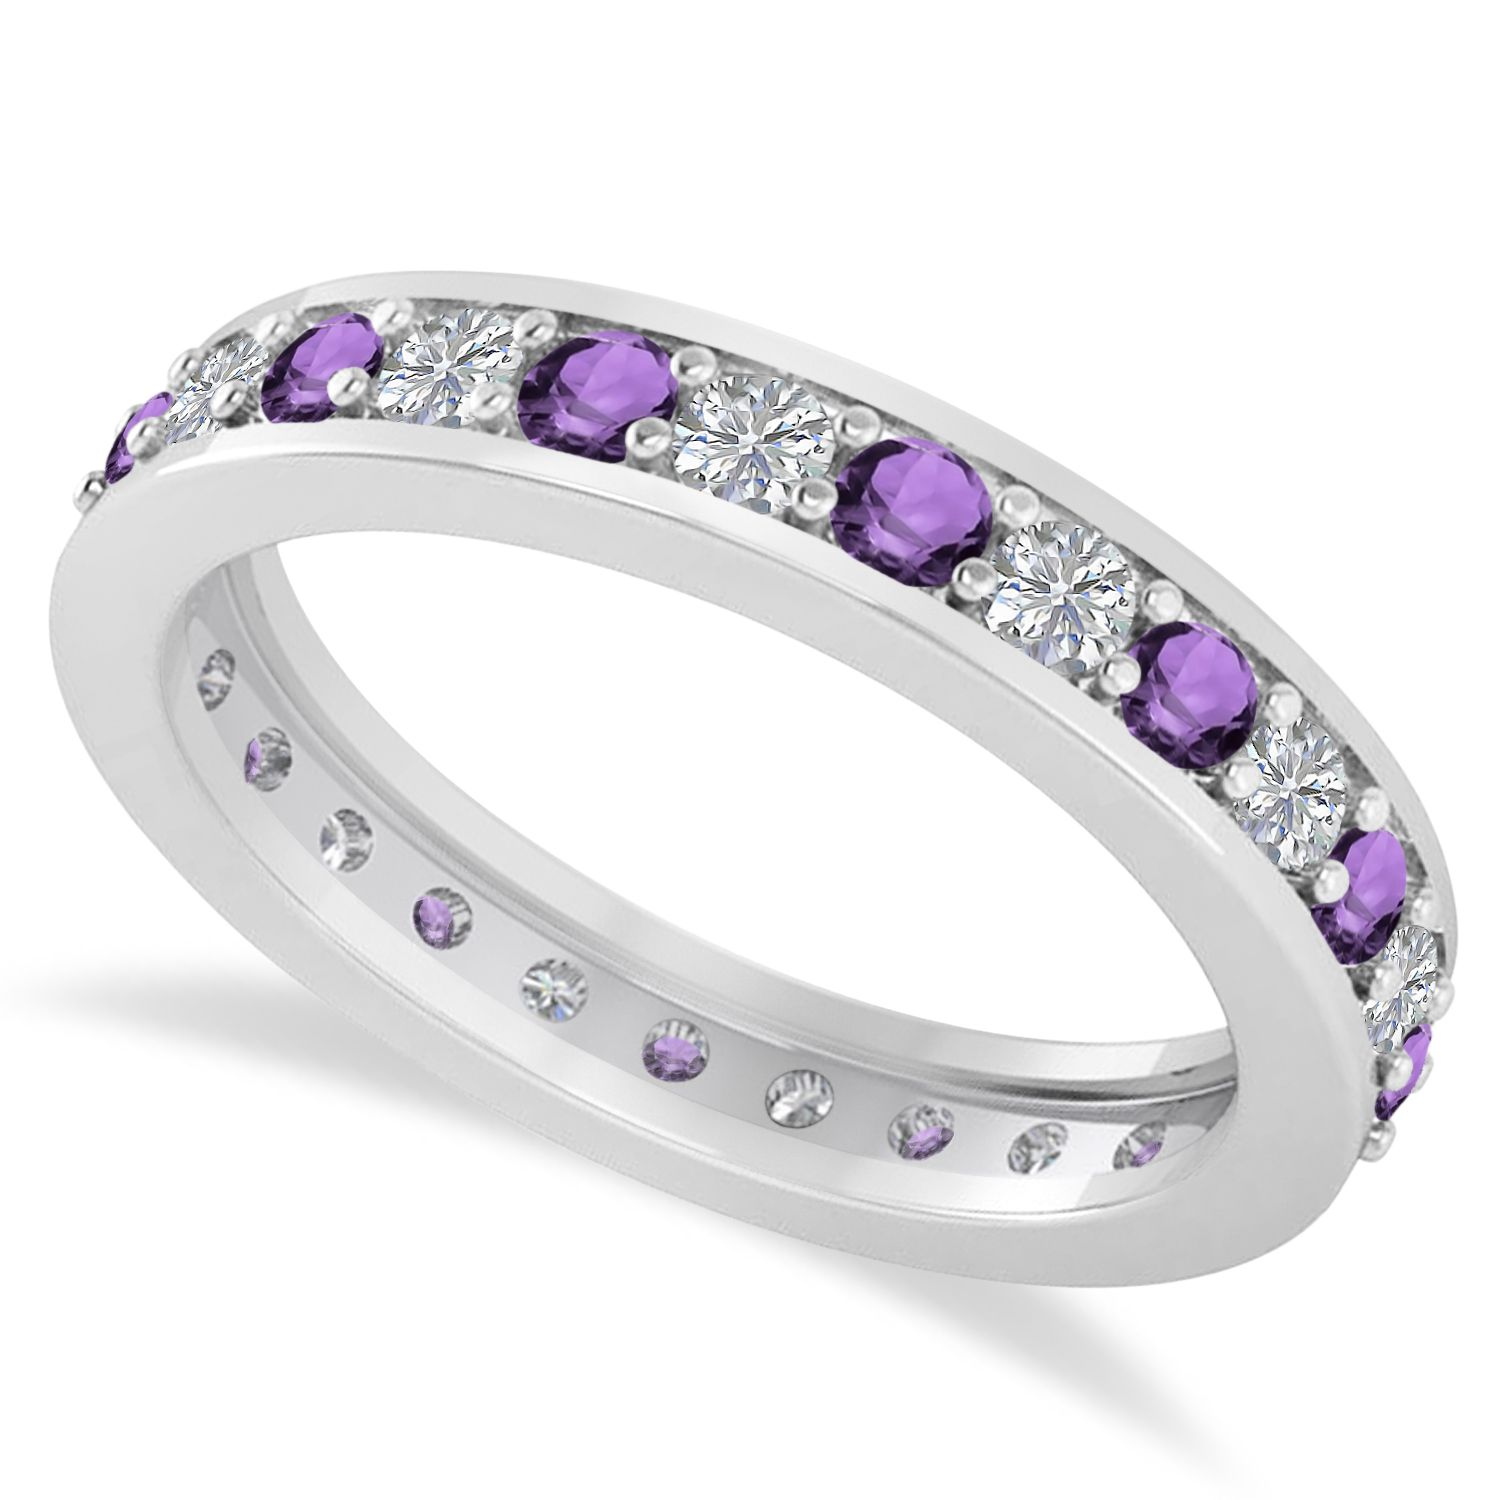 1 carat Natural Amethyst Eternity Band Ring in Sterling Silver